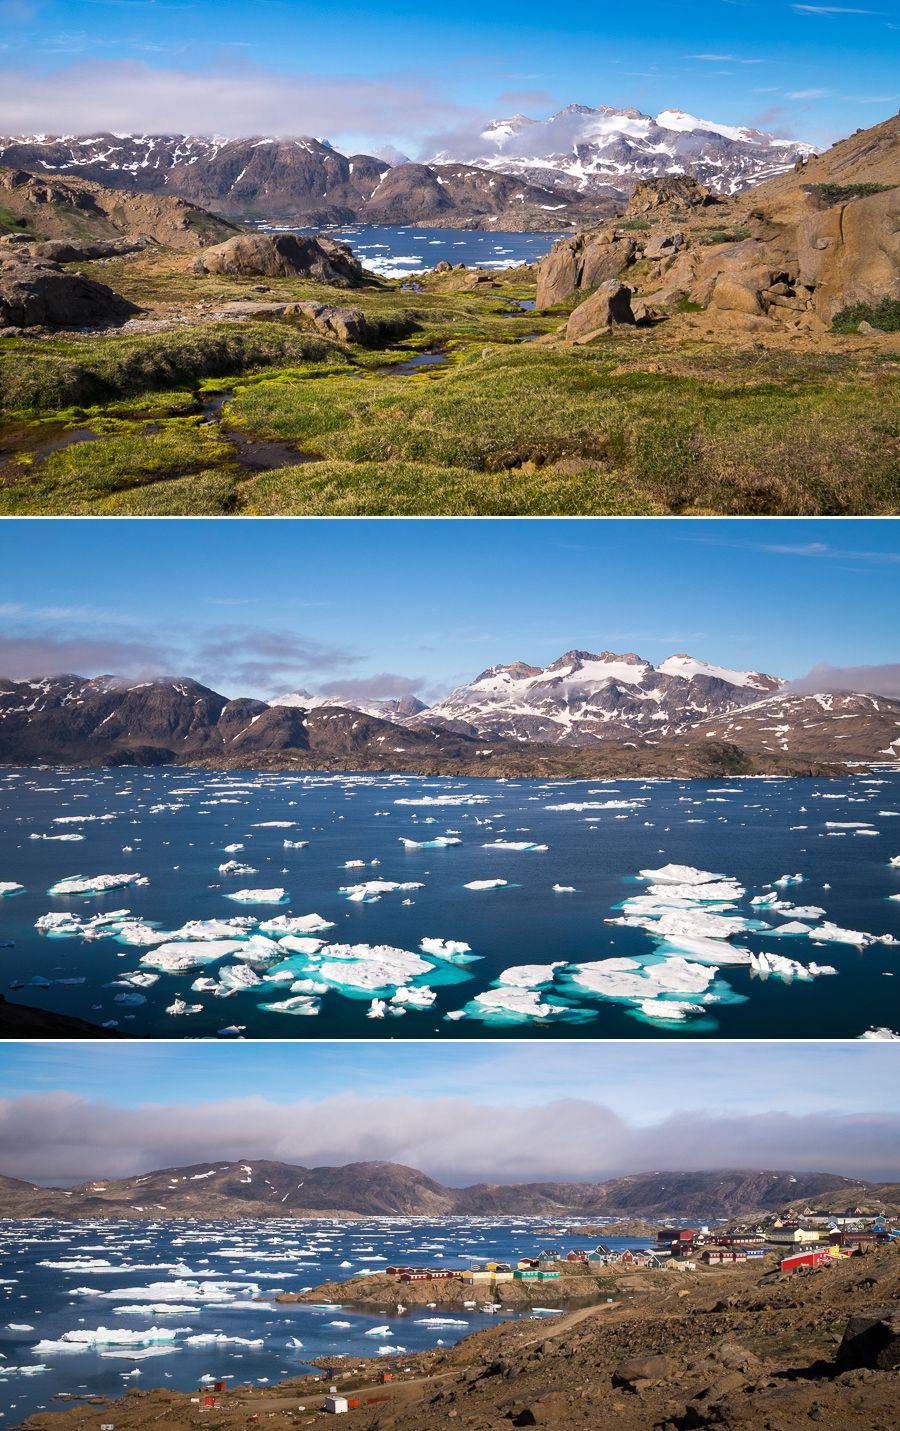 Views of the Tasiilaq fjord as I re-enter the town after the Flower Valley Hike, East Greenland